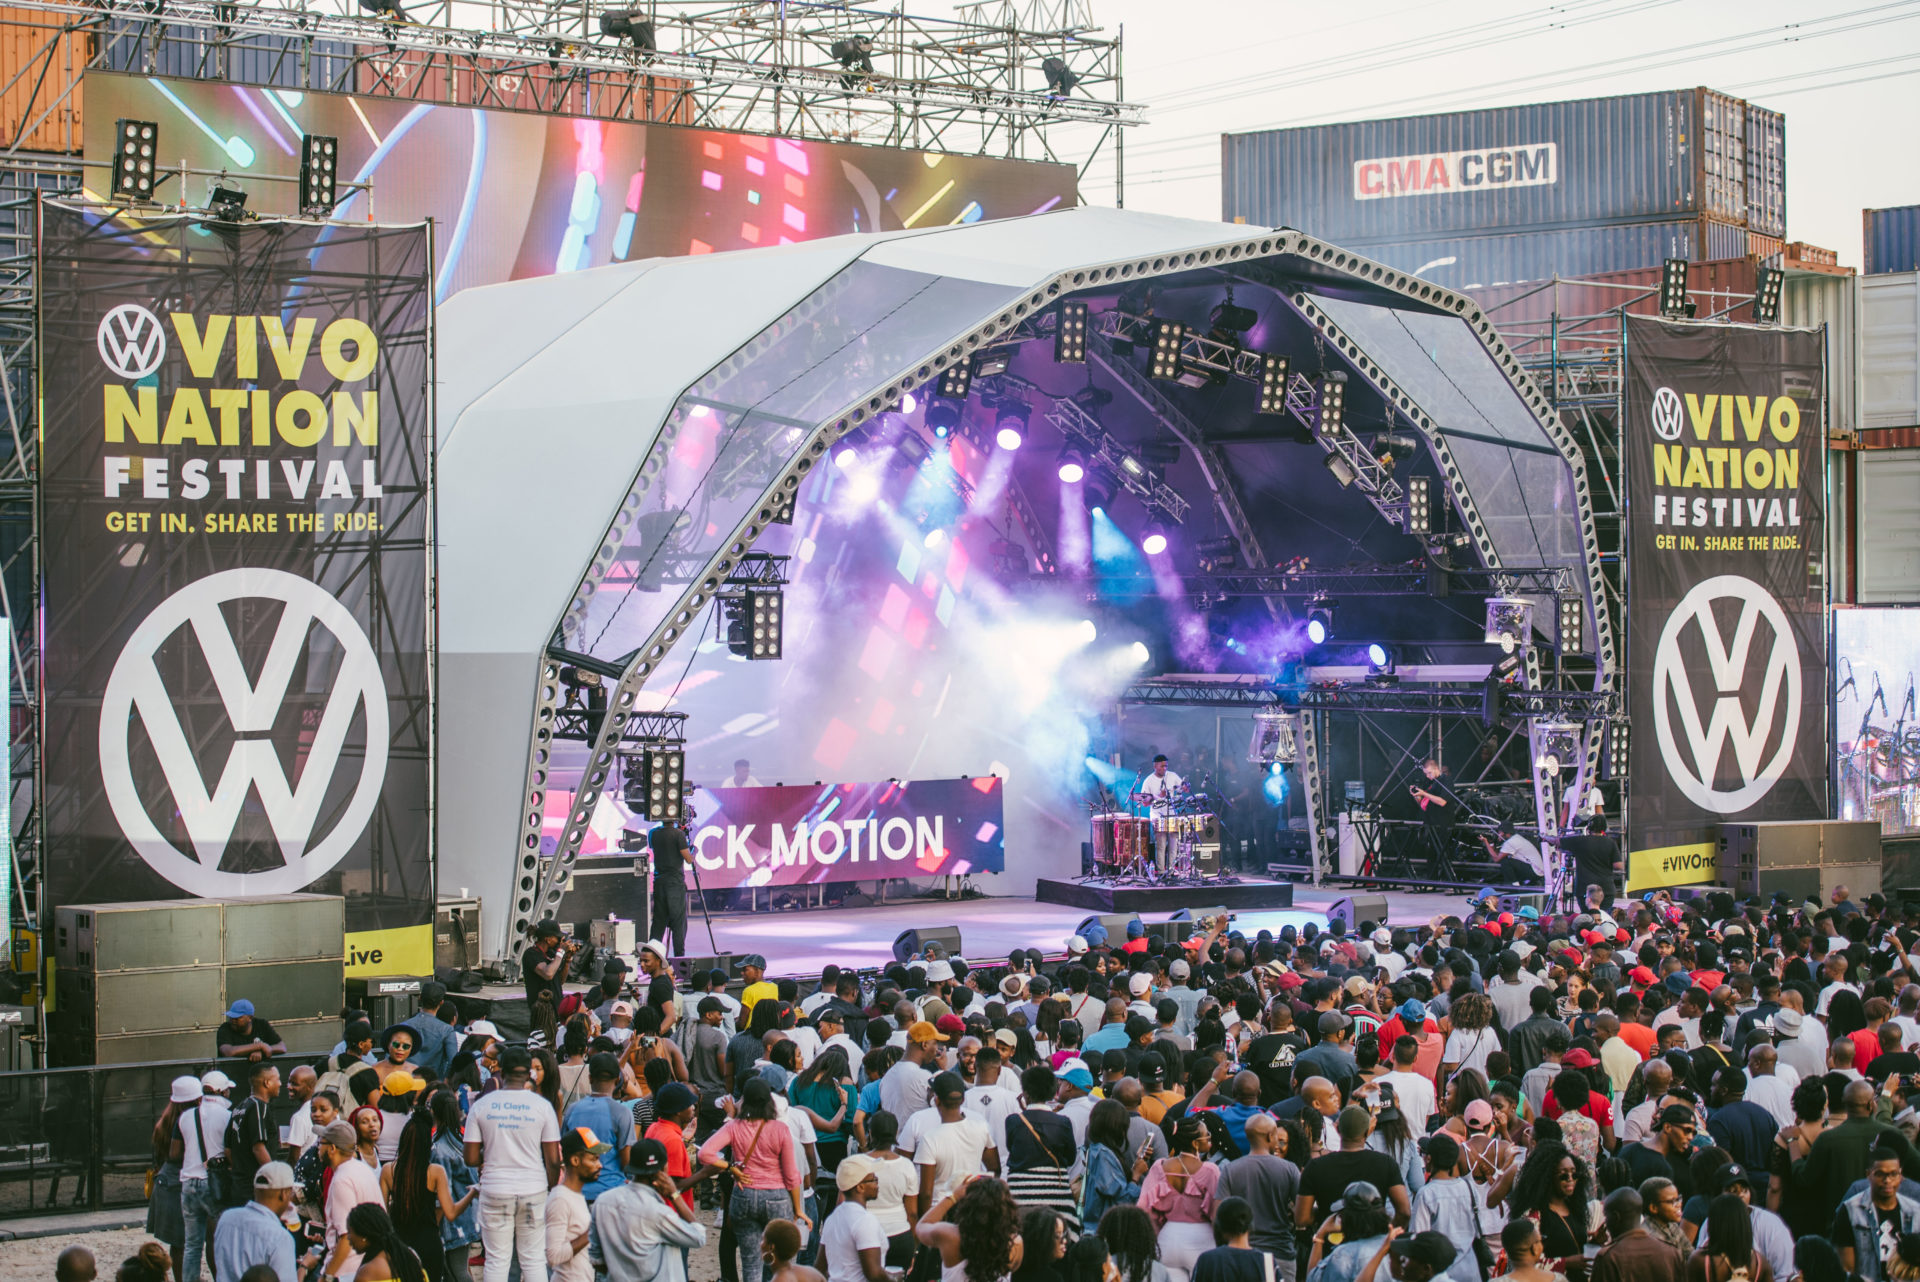 VW #VIVONATION FESTIVAL 2018 and 2019